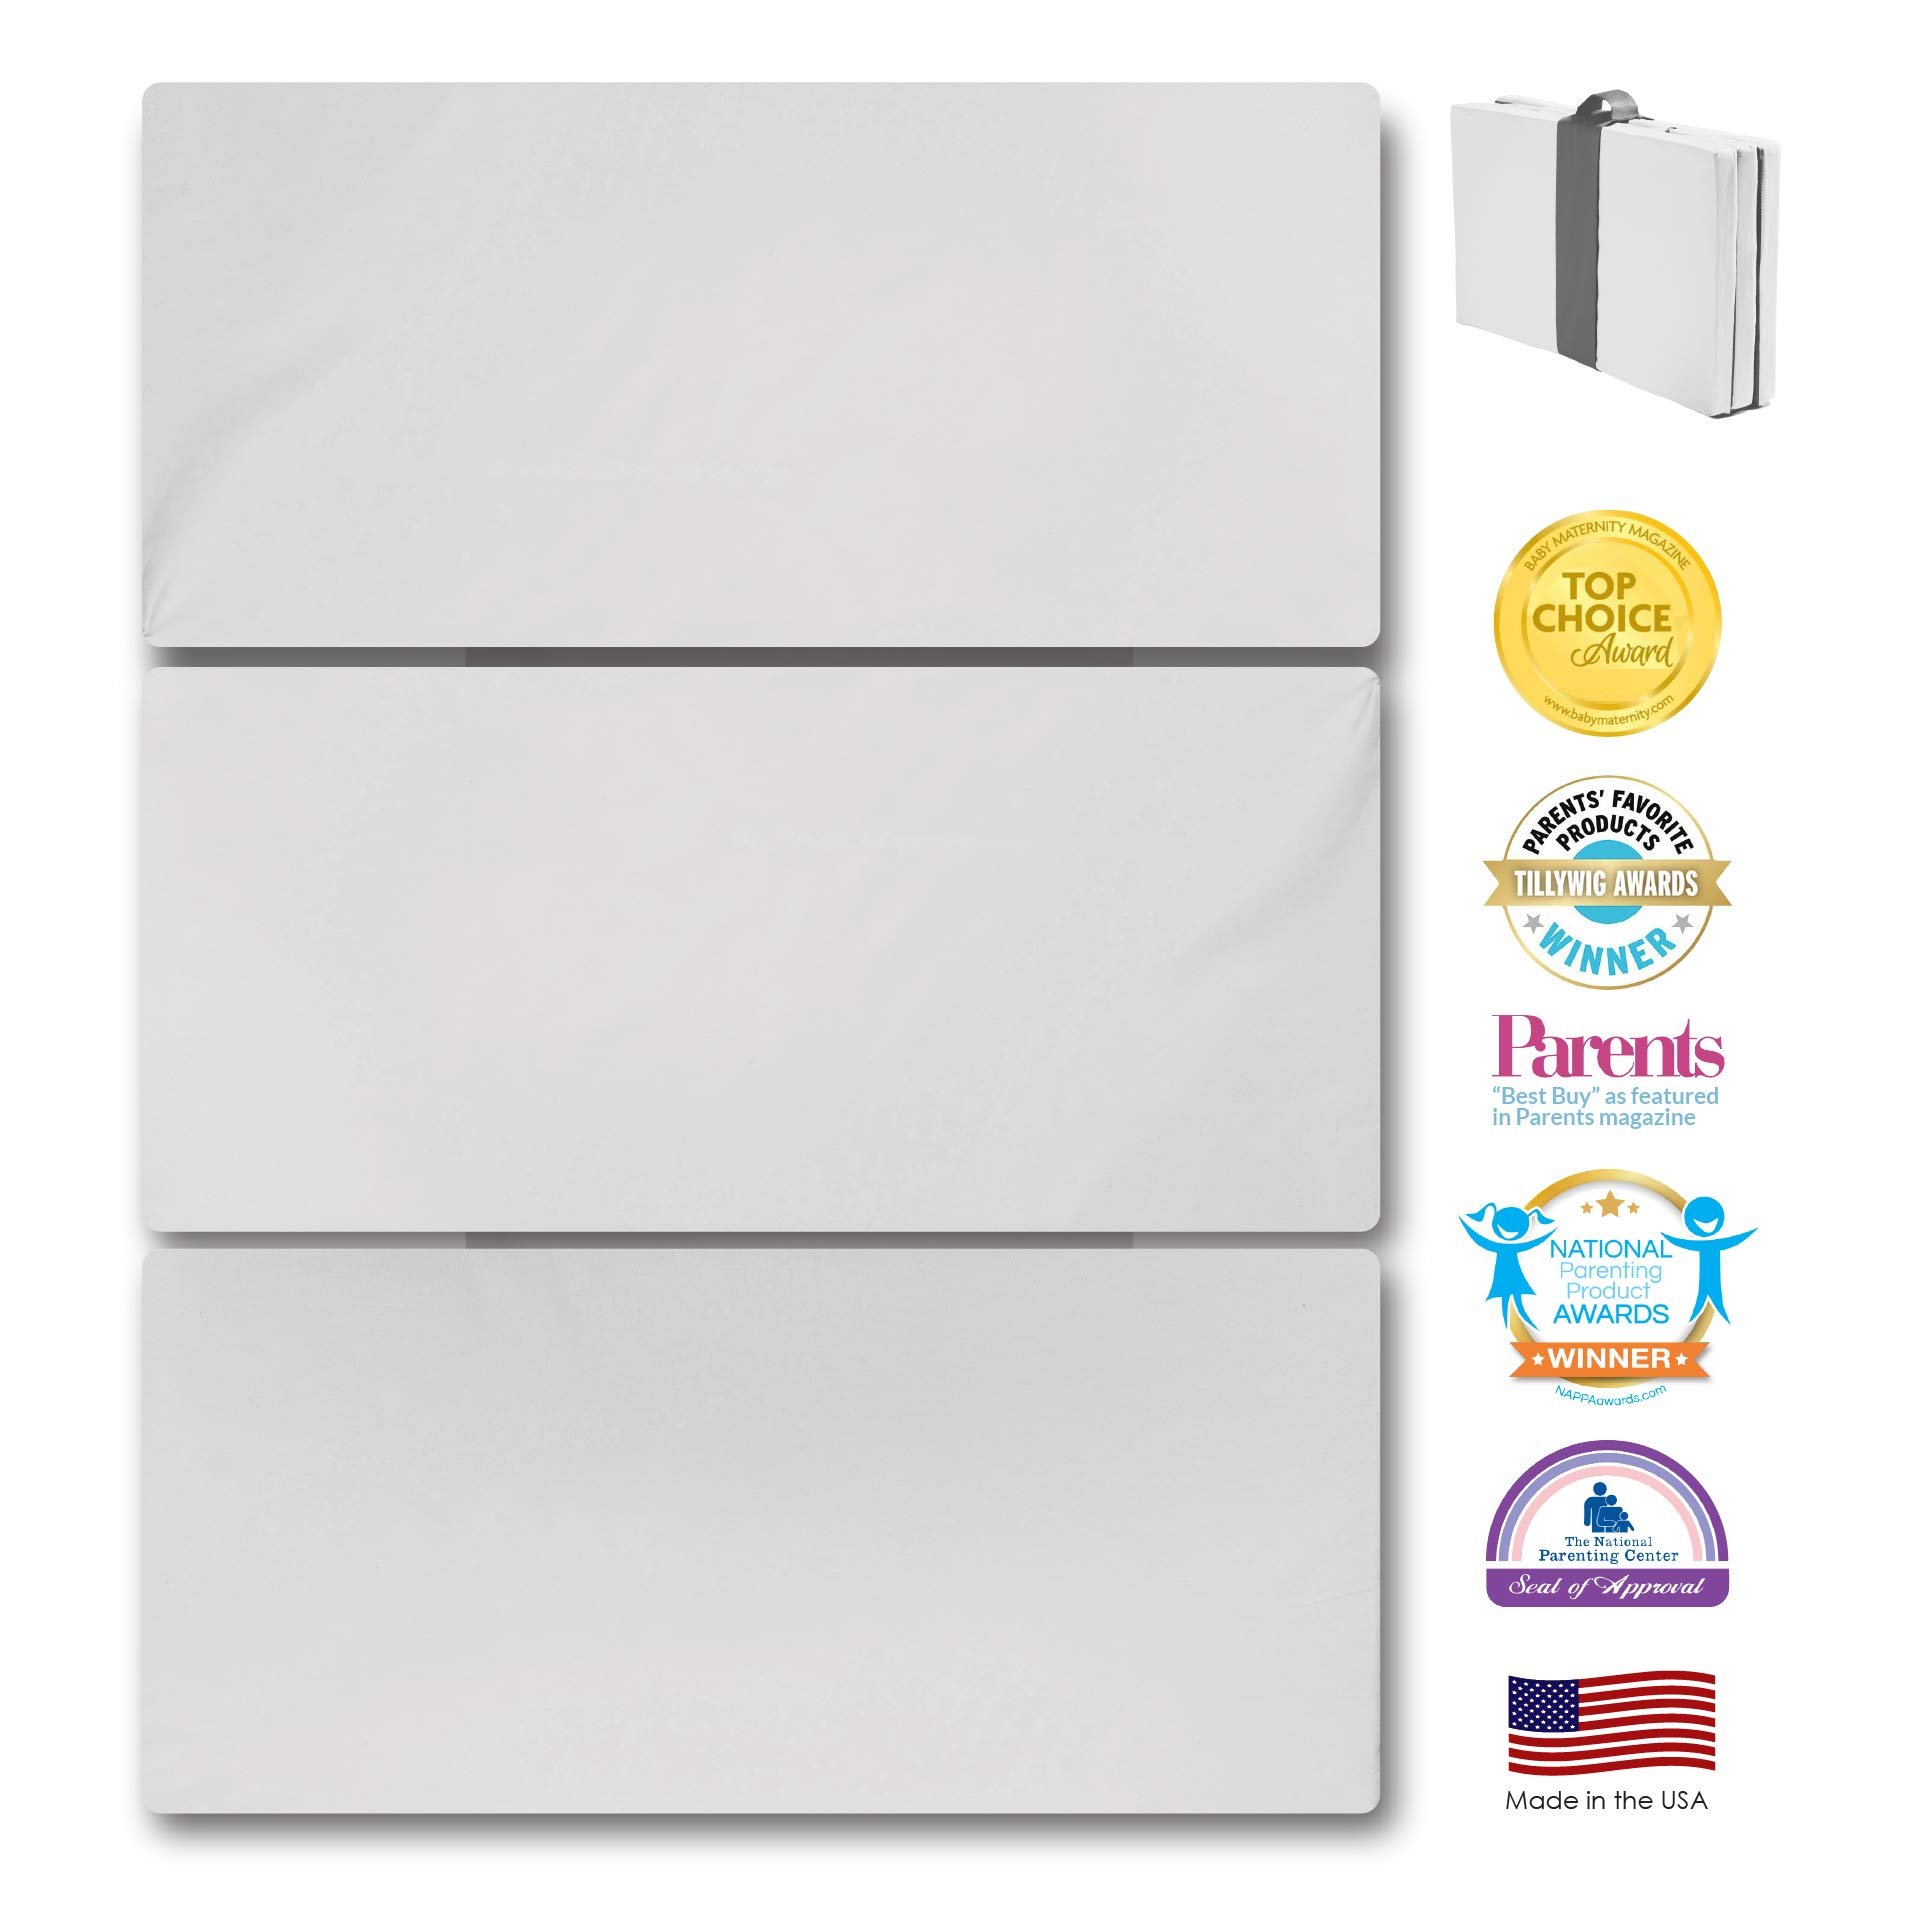 MamaDooKids Smart Play Yard Mattress, Patented and Made in California, 4 National Awards, Safe, Non-Toxic for 0-3 yr. old, Multi-use and Portable, Includes Travel and Storage Bag, Silver by MamaDoo